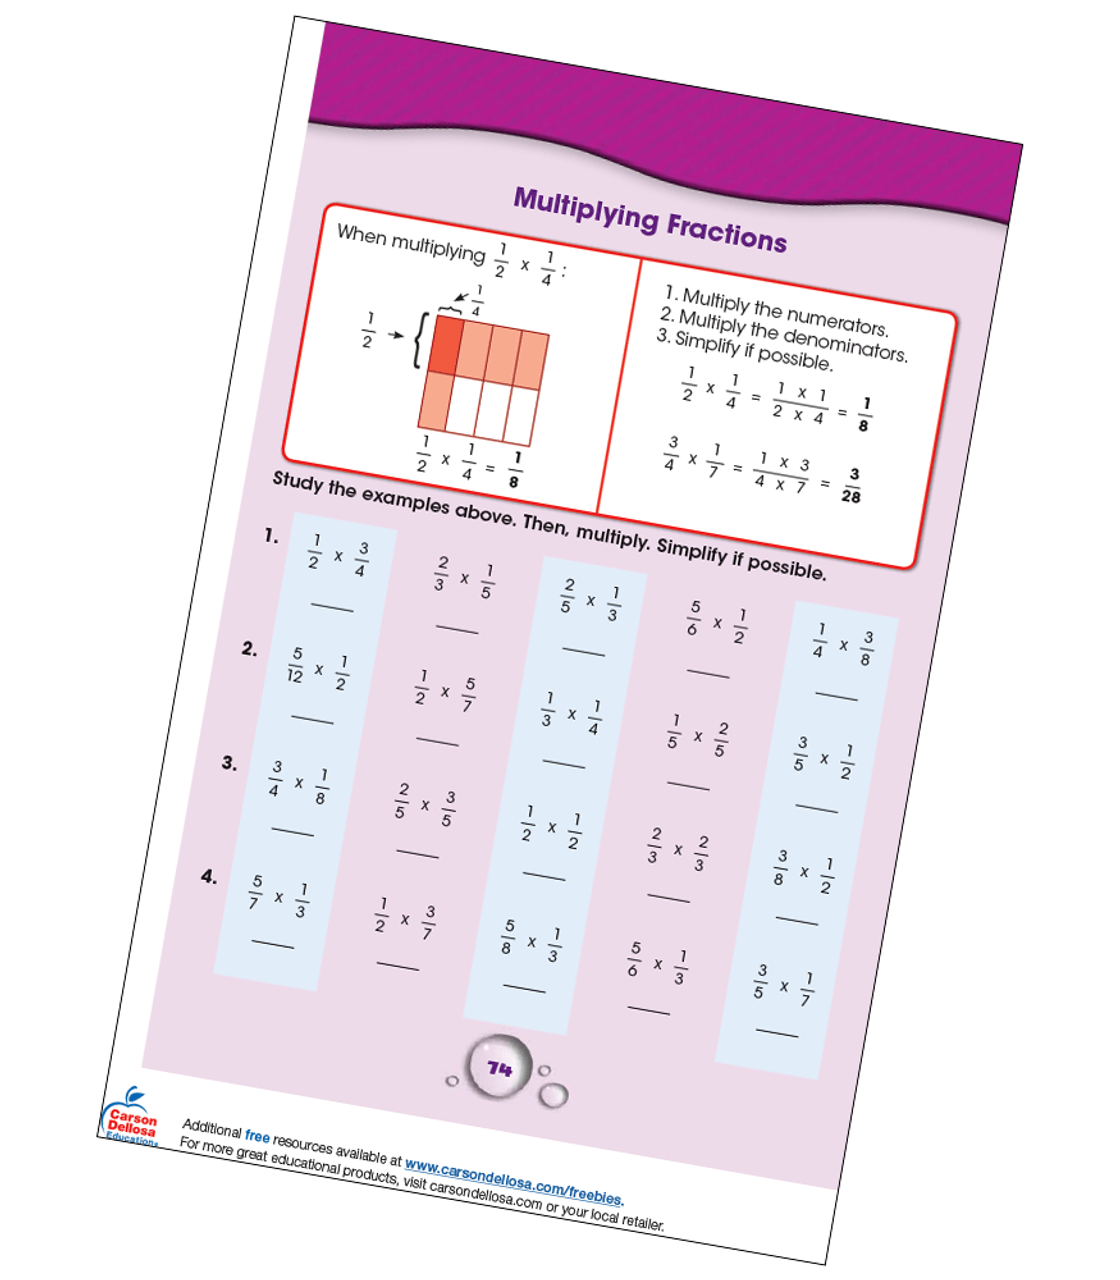 hight resolution of Multiplying Fractions Grade 4-5 Free Printable   Carson Dellosa